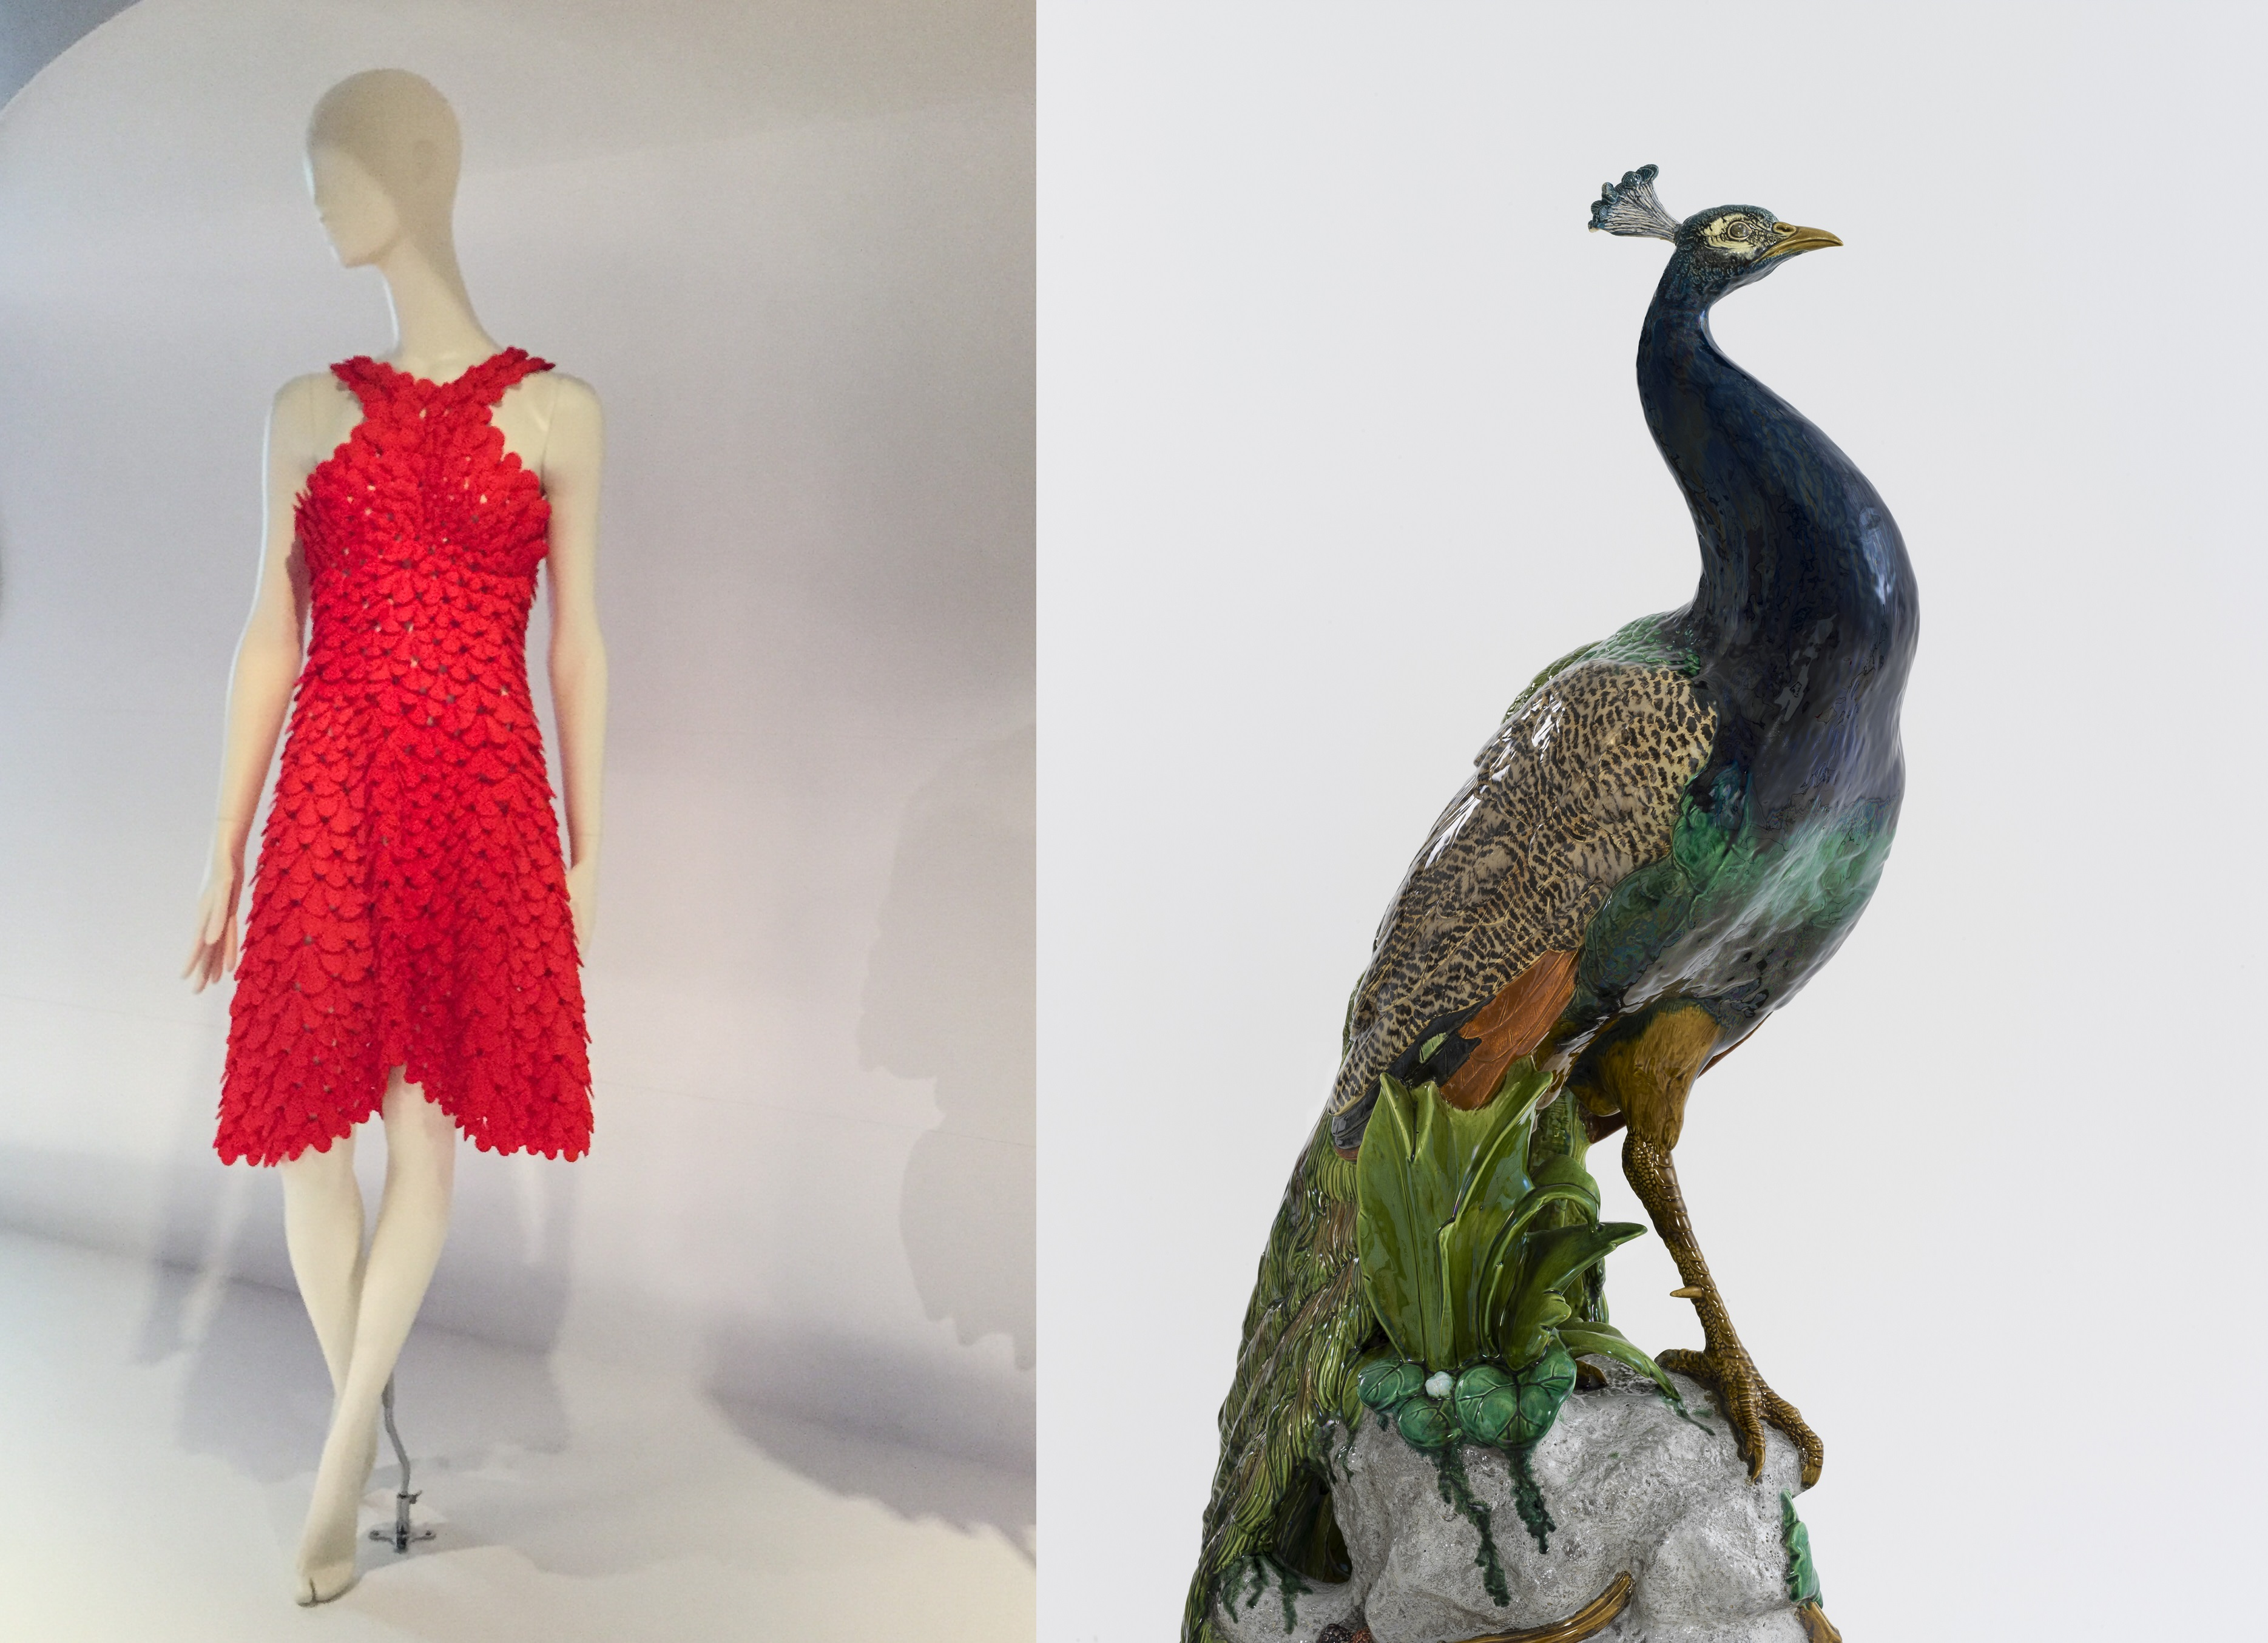 Two images side by side. Left: A red dress which appears to be made of red petals or scales, on a white mannequin. Right: Ceramic peacock sculpture featuring deep blue and green glazes.